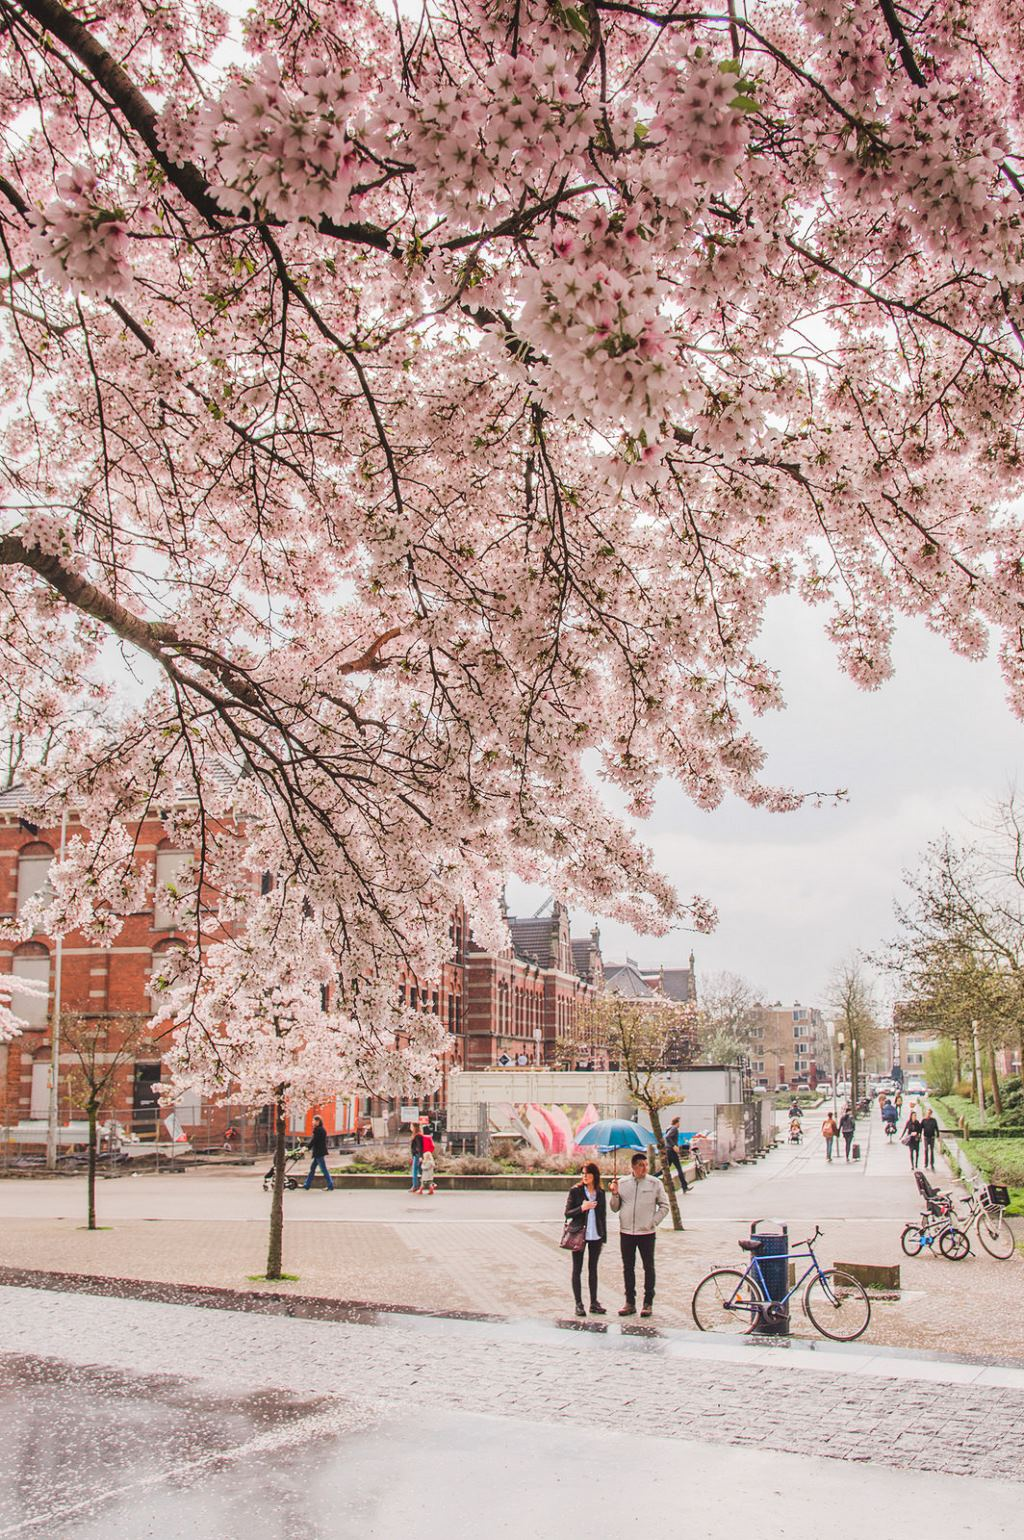 Cherry blossoms at the Westerpark in Amsterdam